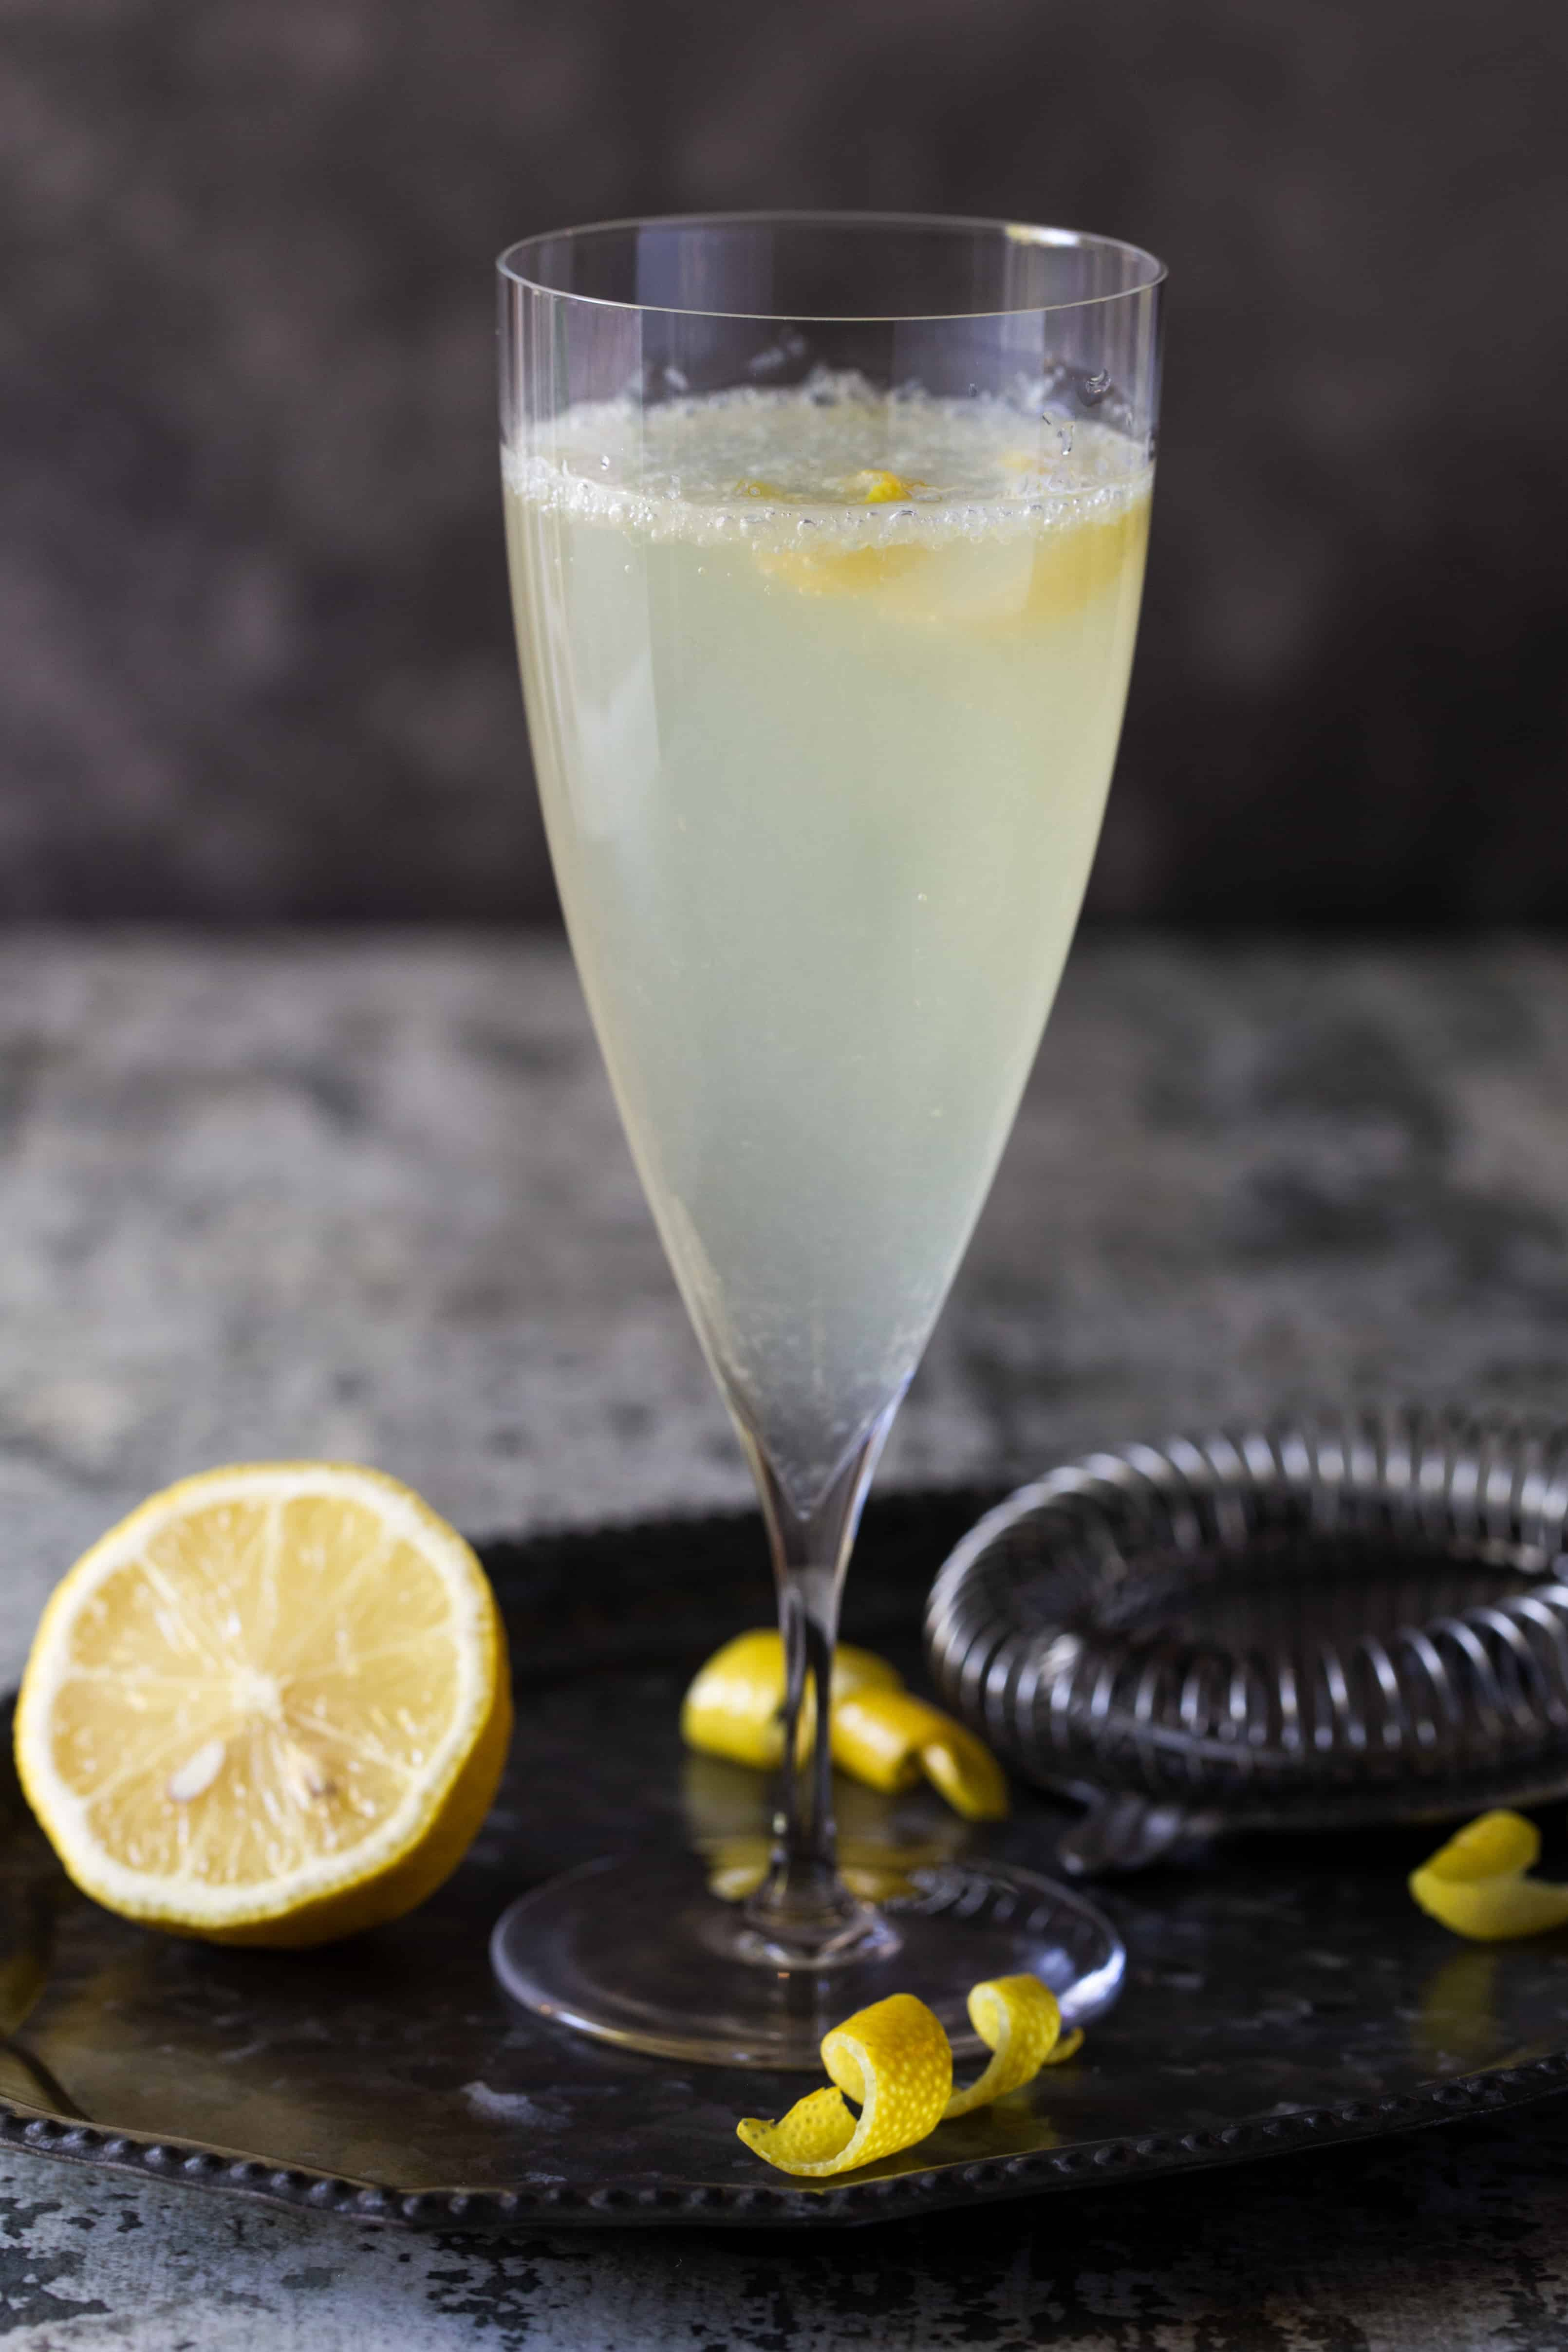 Single cocktail in a tall flute garnished with a lemon slice on a dark background.